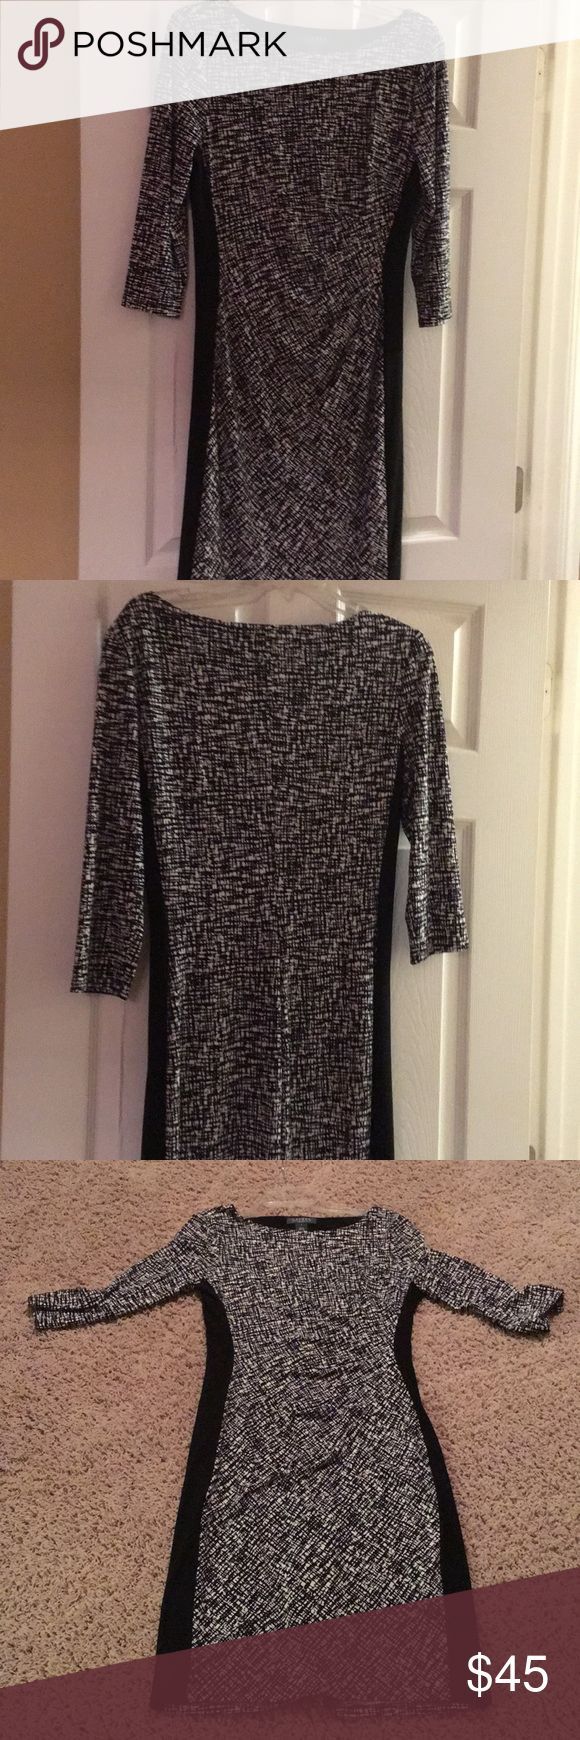 Ralph Lauren dress Beautiful Ralph Lauren dress. Side panels are black. Black and white pattern on front and back. Rushing in front to flatter any figure. Great for work or dress it up fro a night on the town with some bling. Lauren Ralph Lauren Dresses Midi